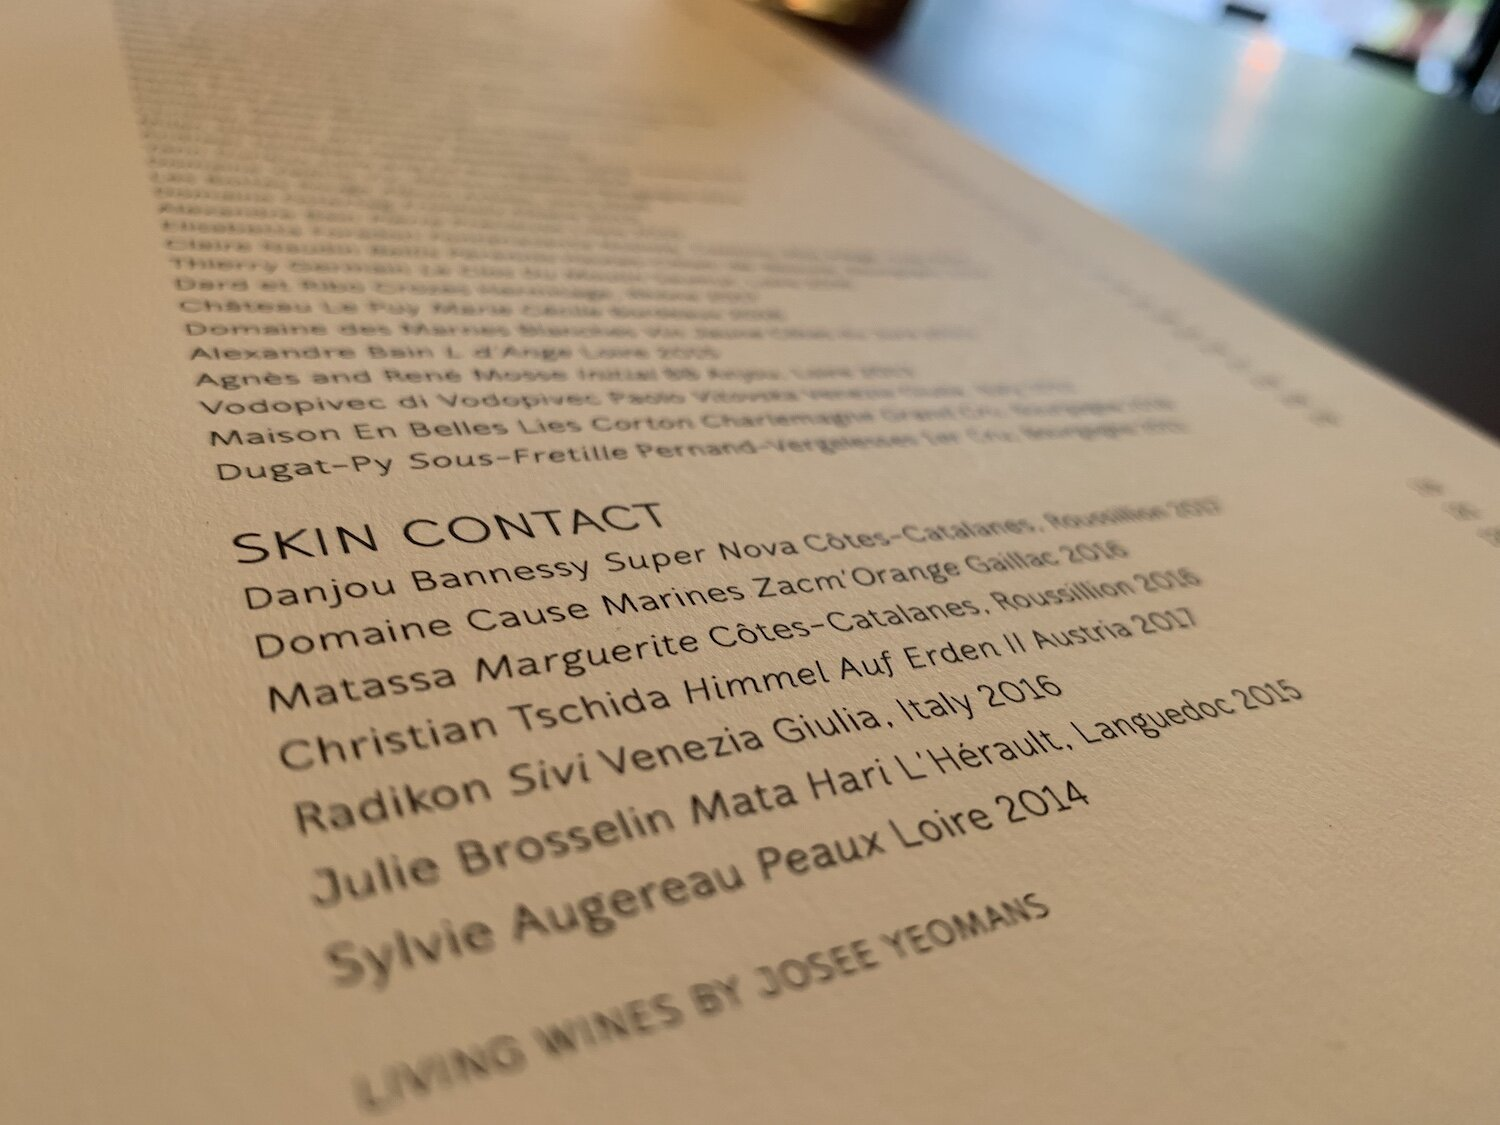 The Skin Contact selection at Le Bon Funk features some much-prized names